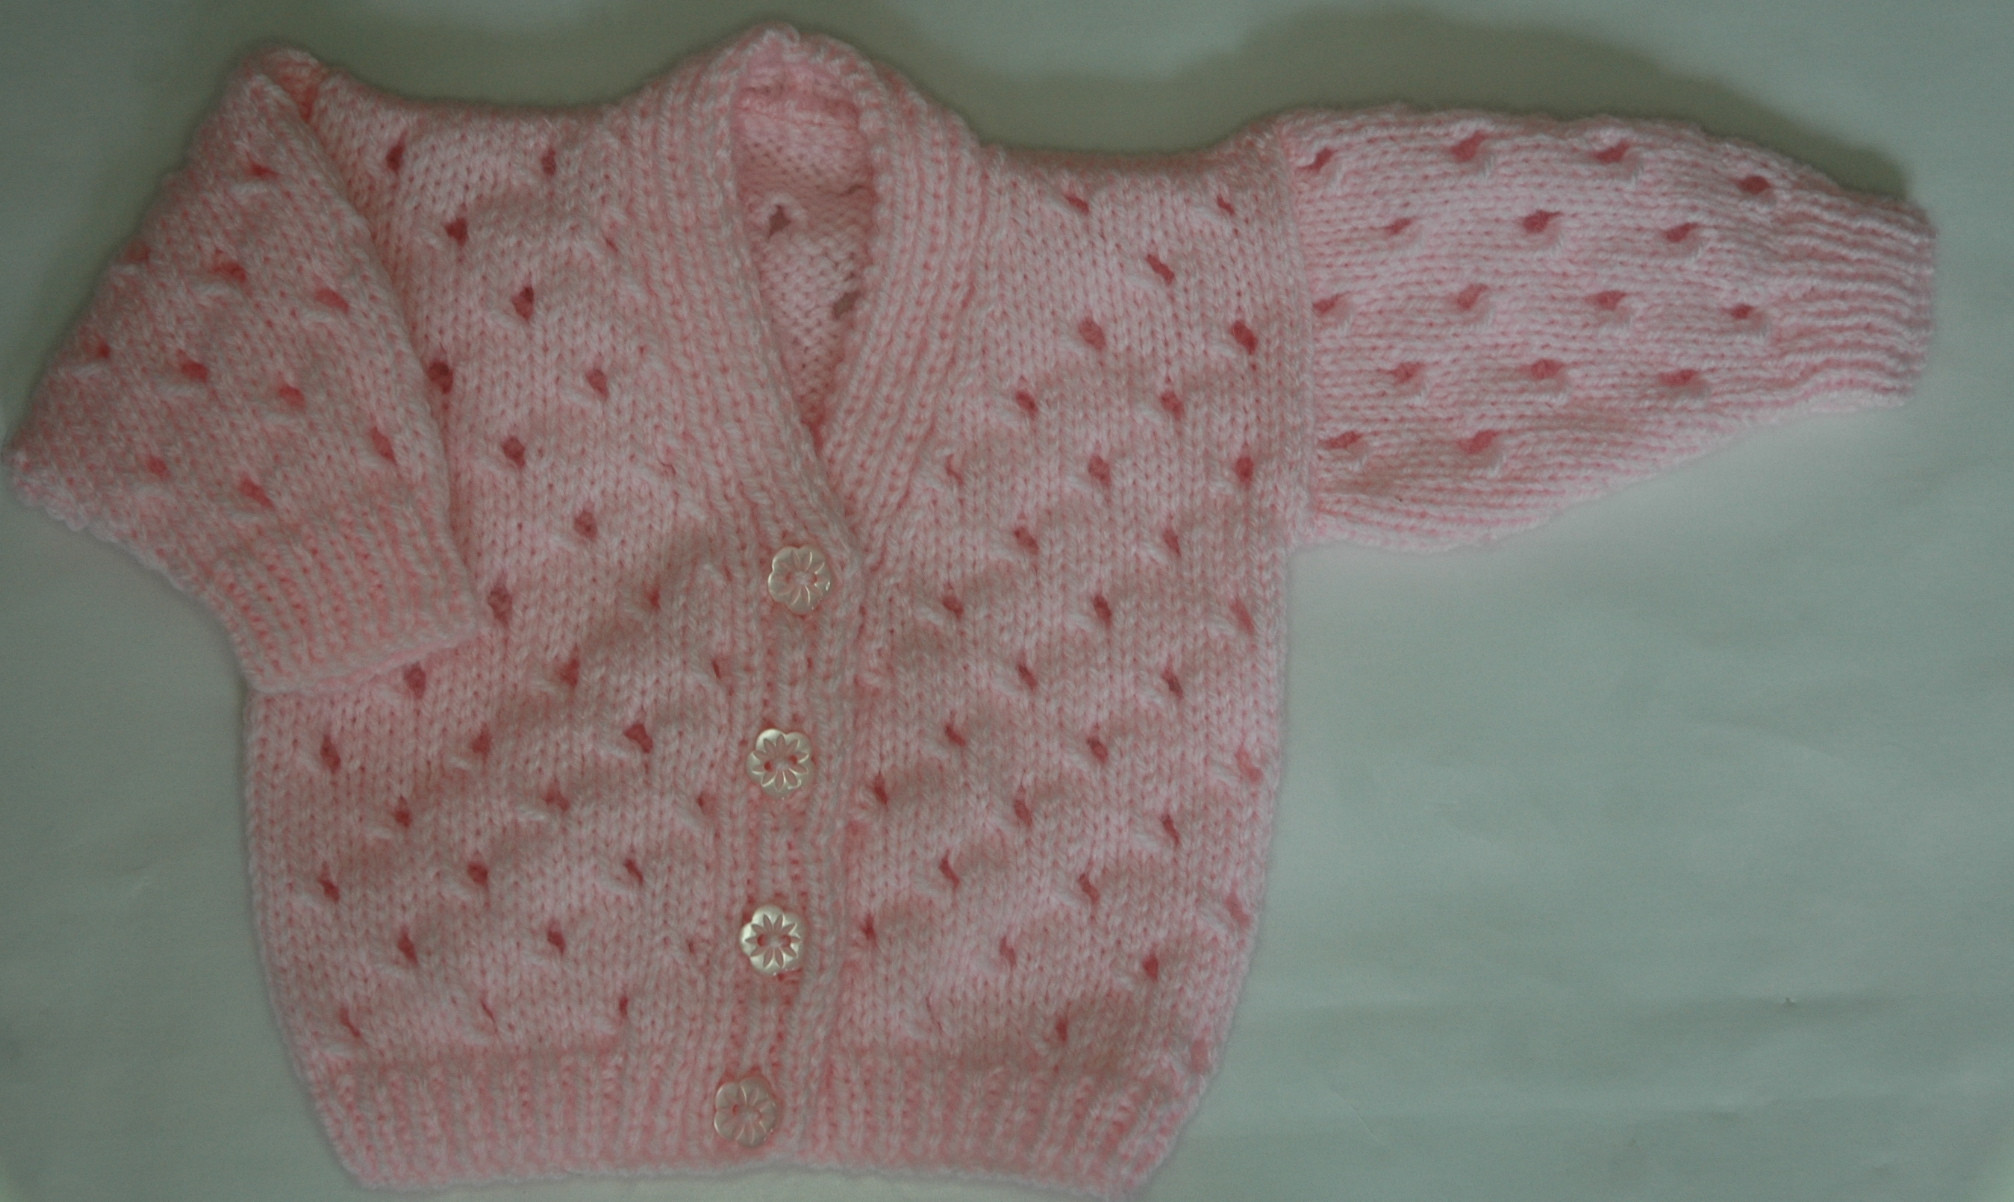 Free Baby Sweater Patterns Awesome Free Knitting Patterns for Newborn Babies Cardigans Of New 42 Pics Free Baby Sweater Patterns